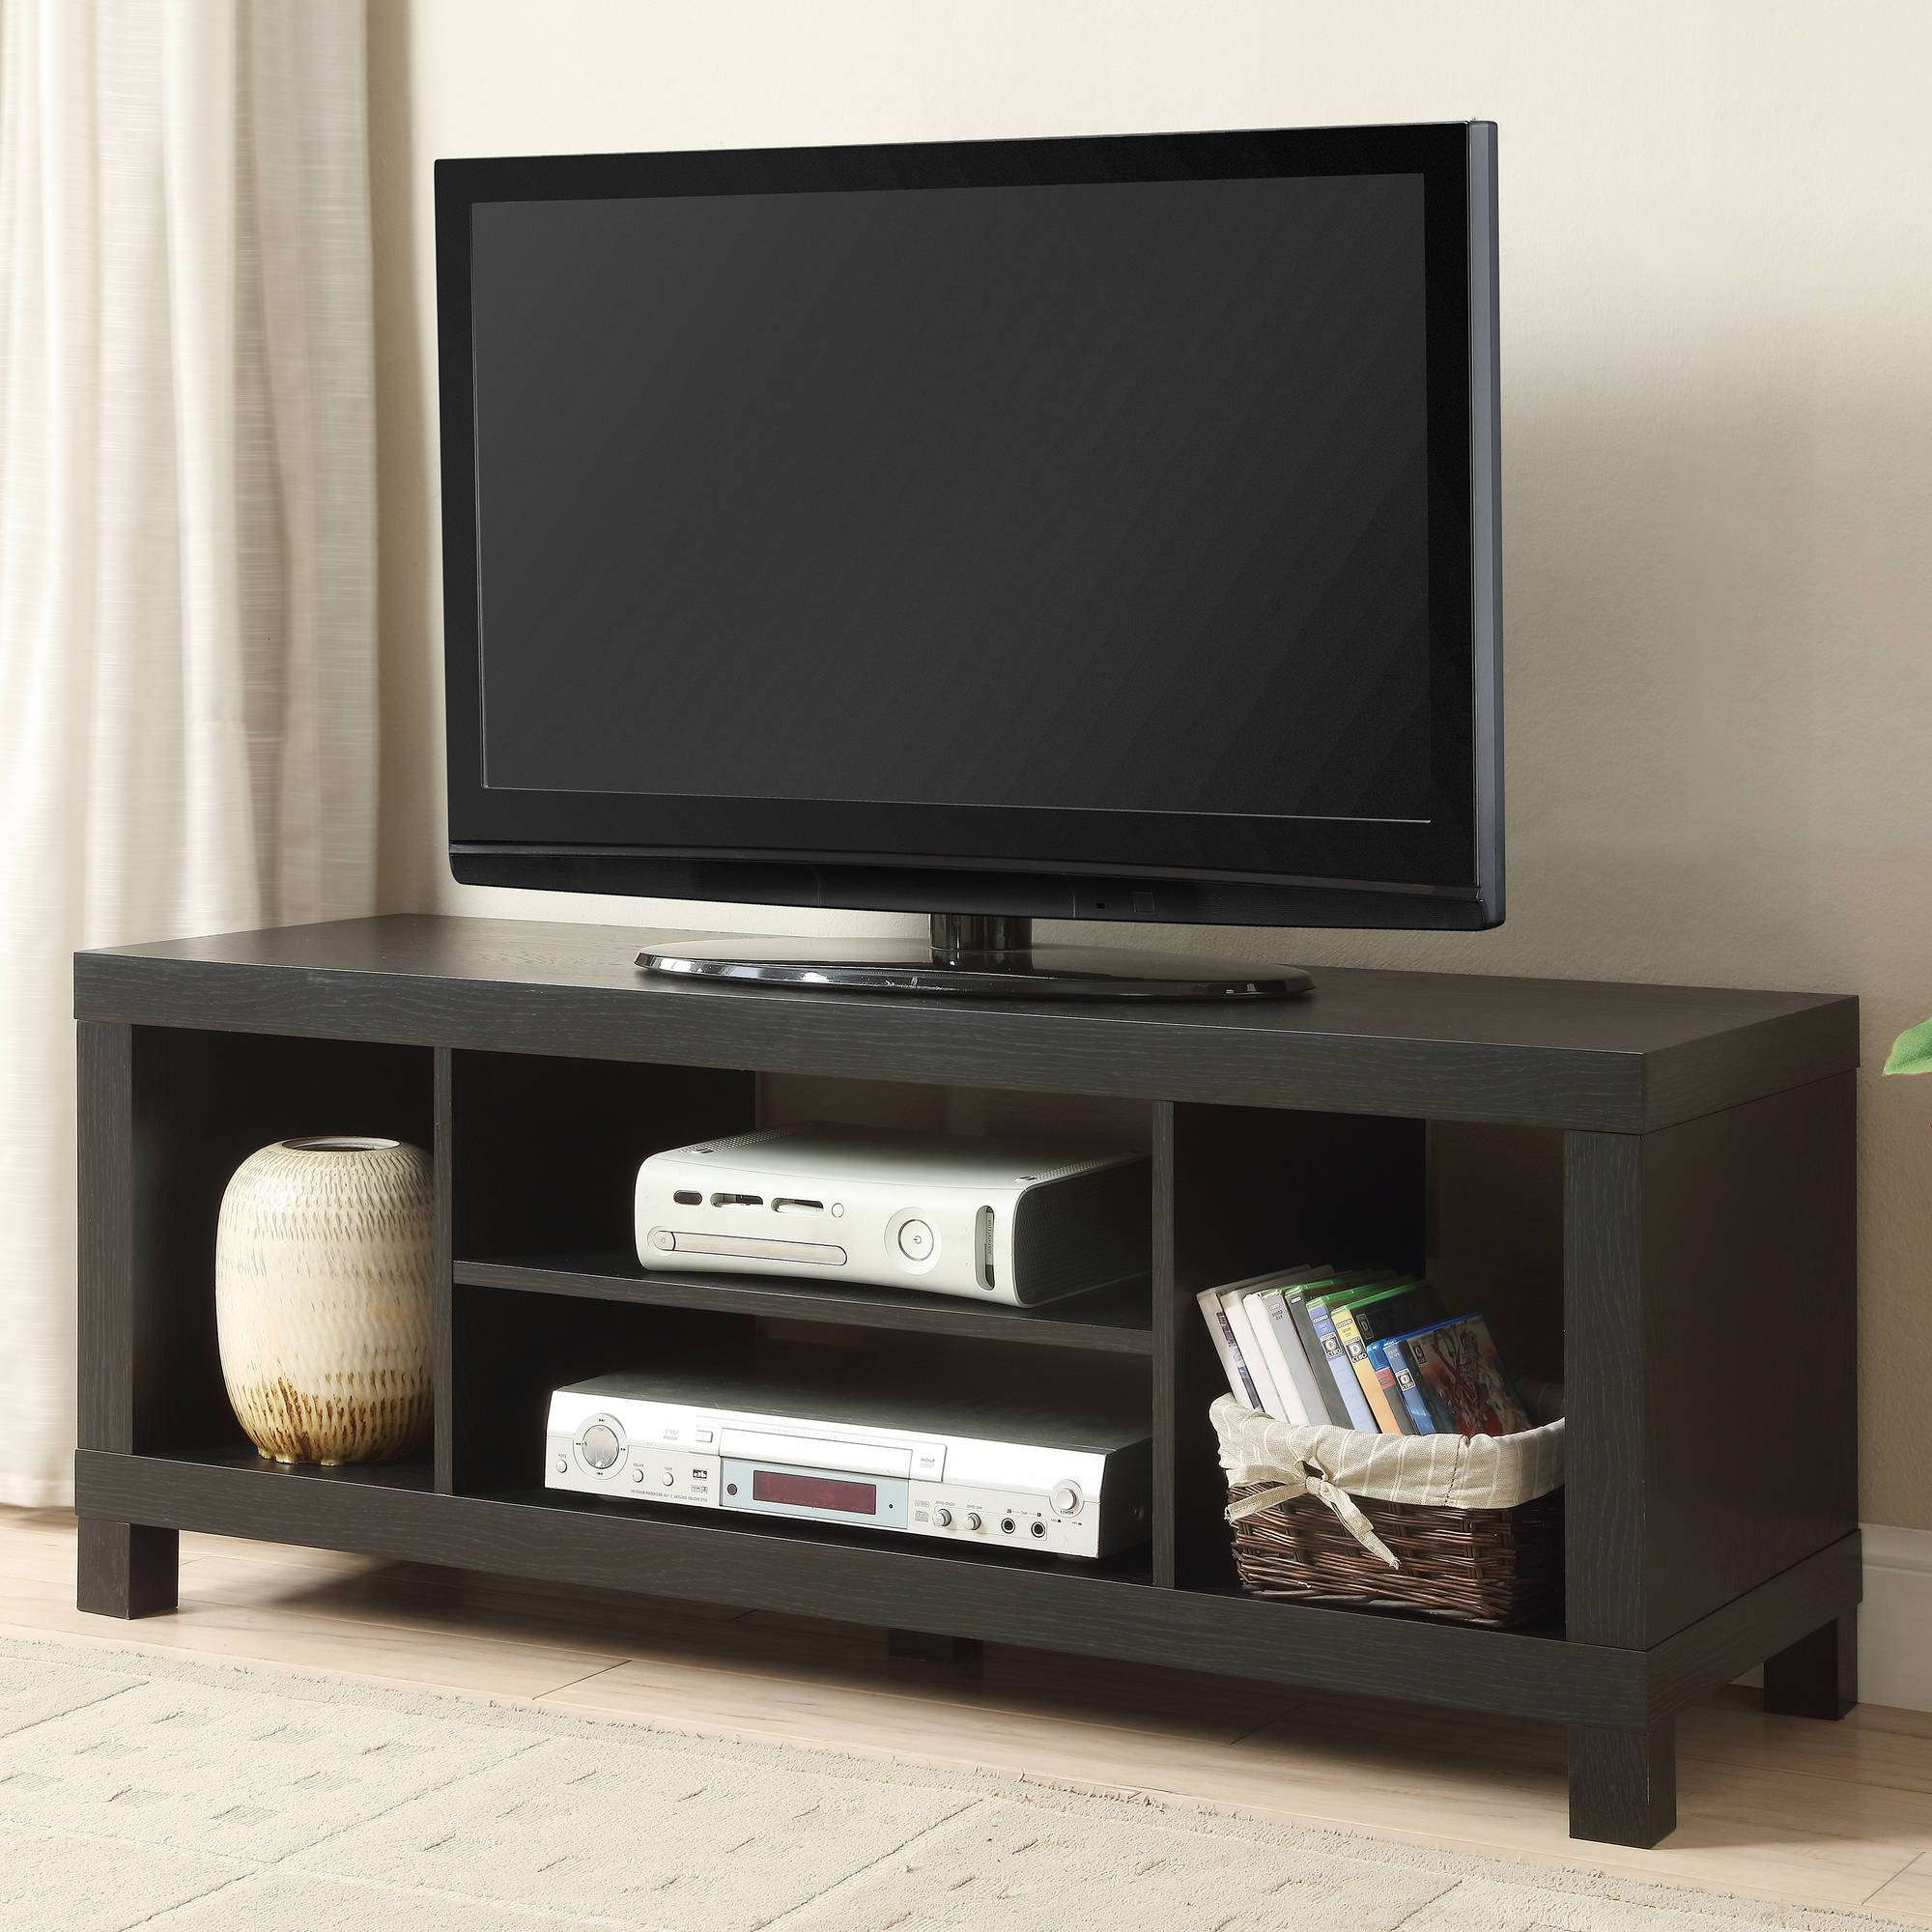 Tv : Bdua Amazing Tv Stands For Tube Tvs Amazon Com Furinno Dbr Bk Inside Elevated Tv Stands (View 8 of 15)